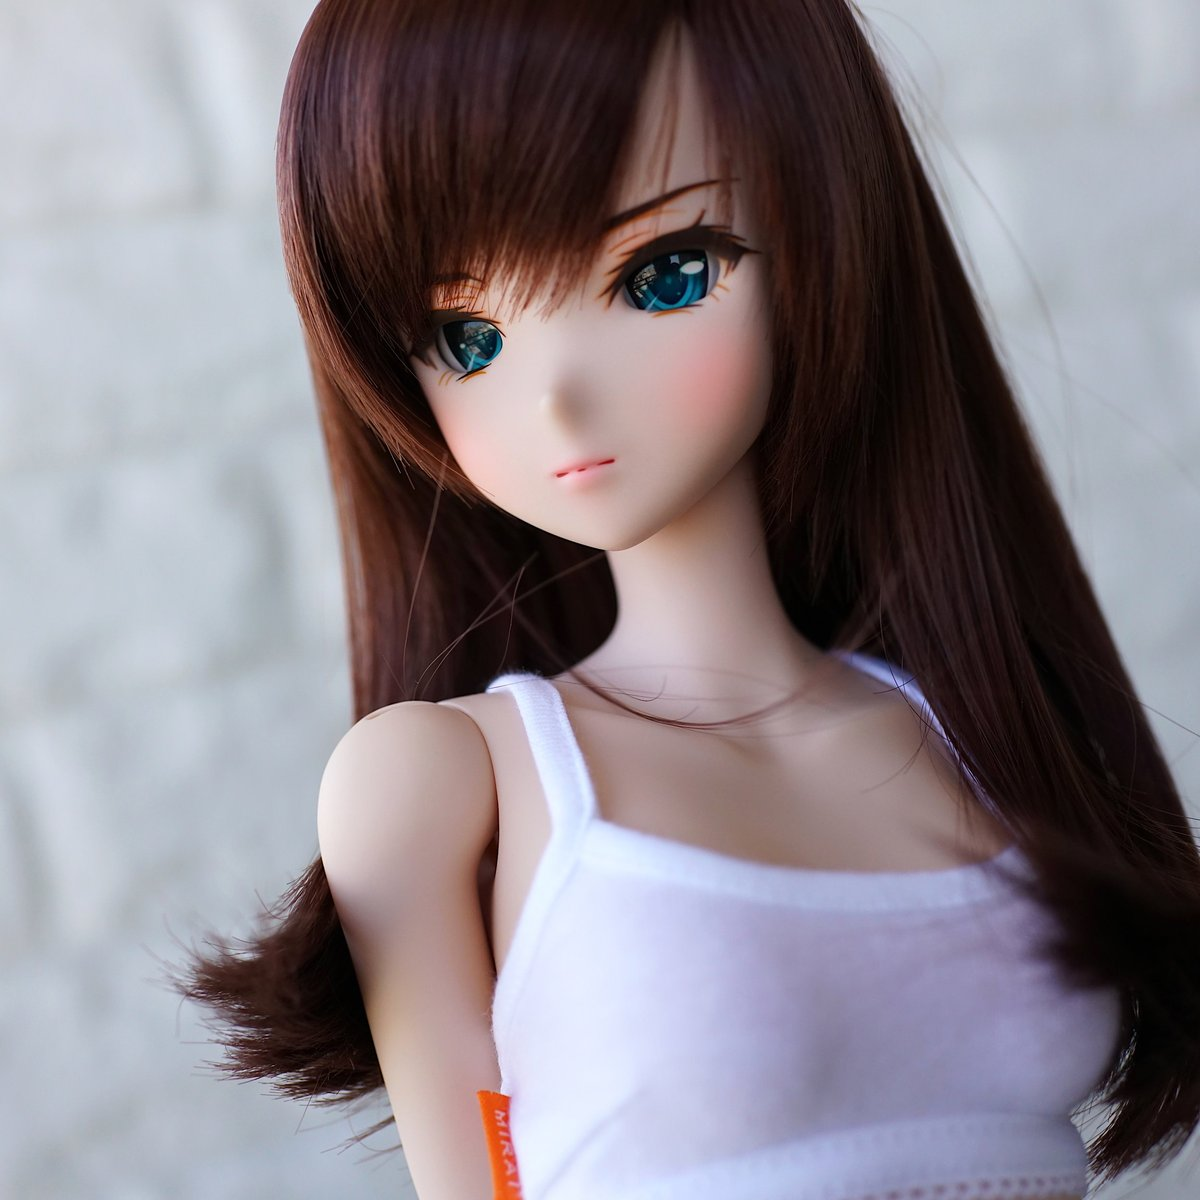 [Smart Doll] Trinity, Serenity, Justice & Unity  - Page 6 Dsc01510